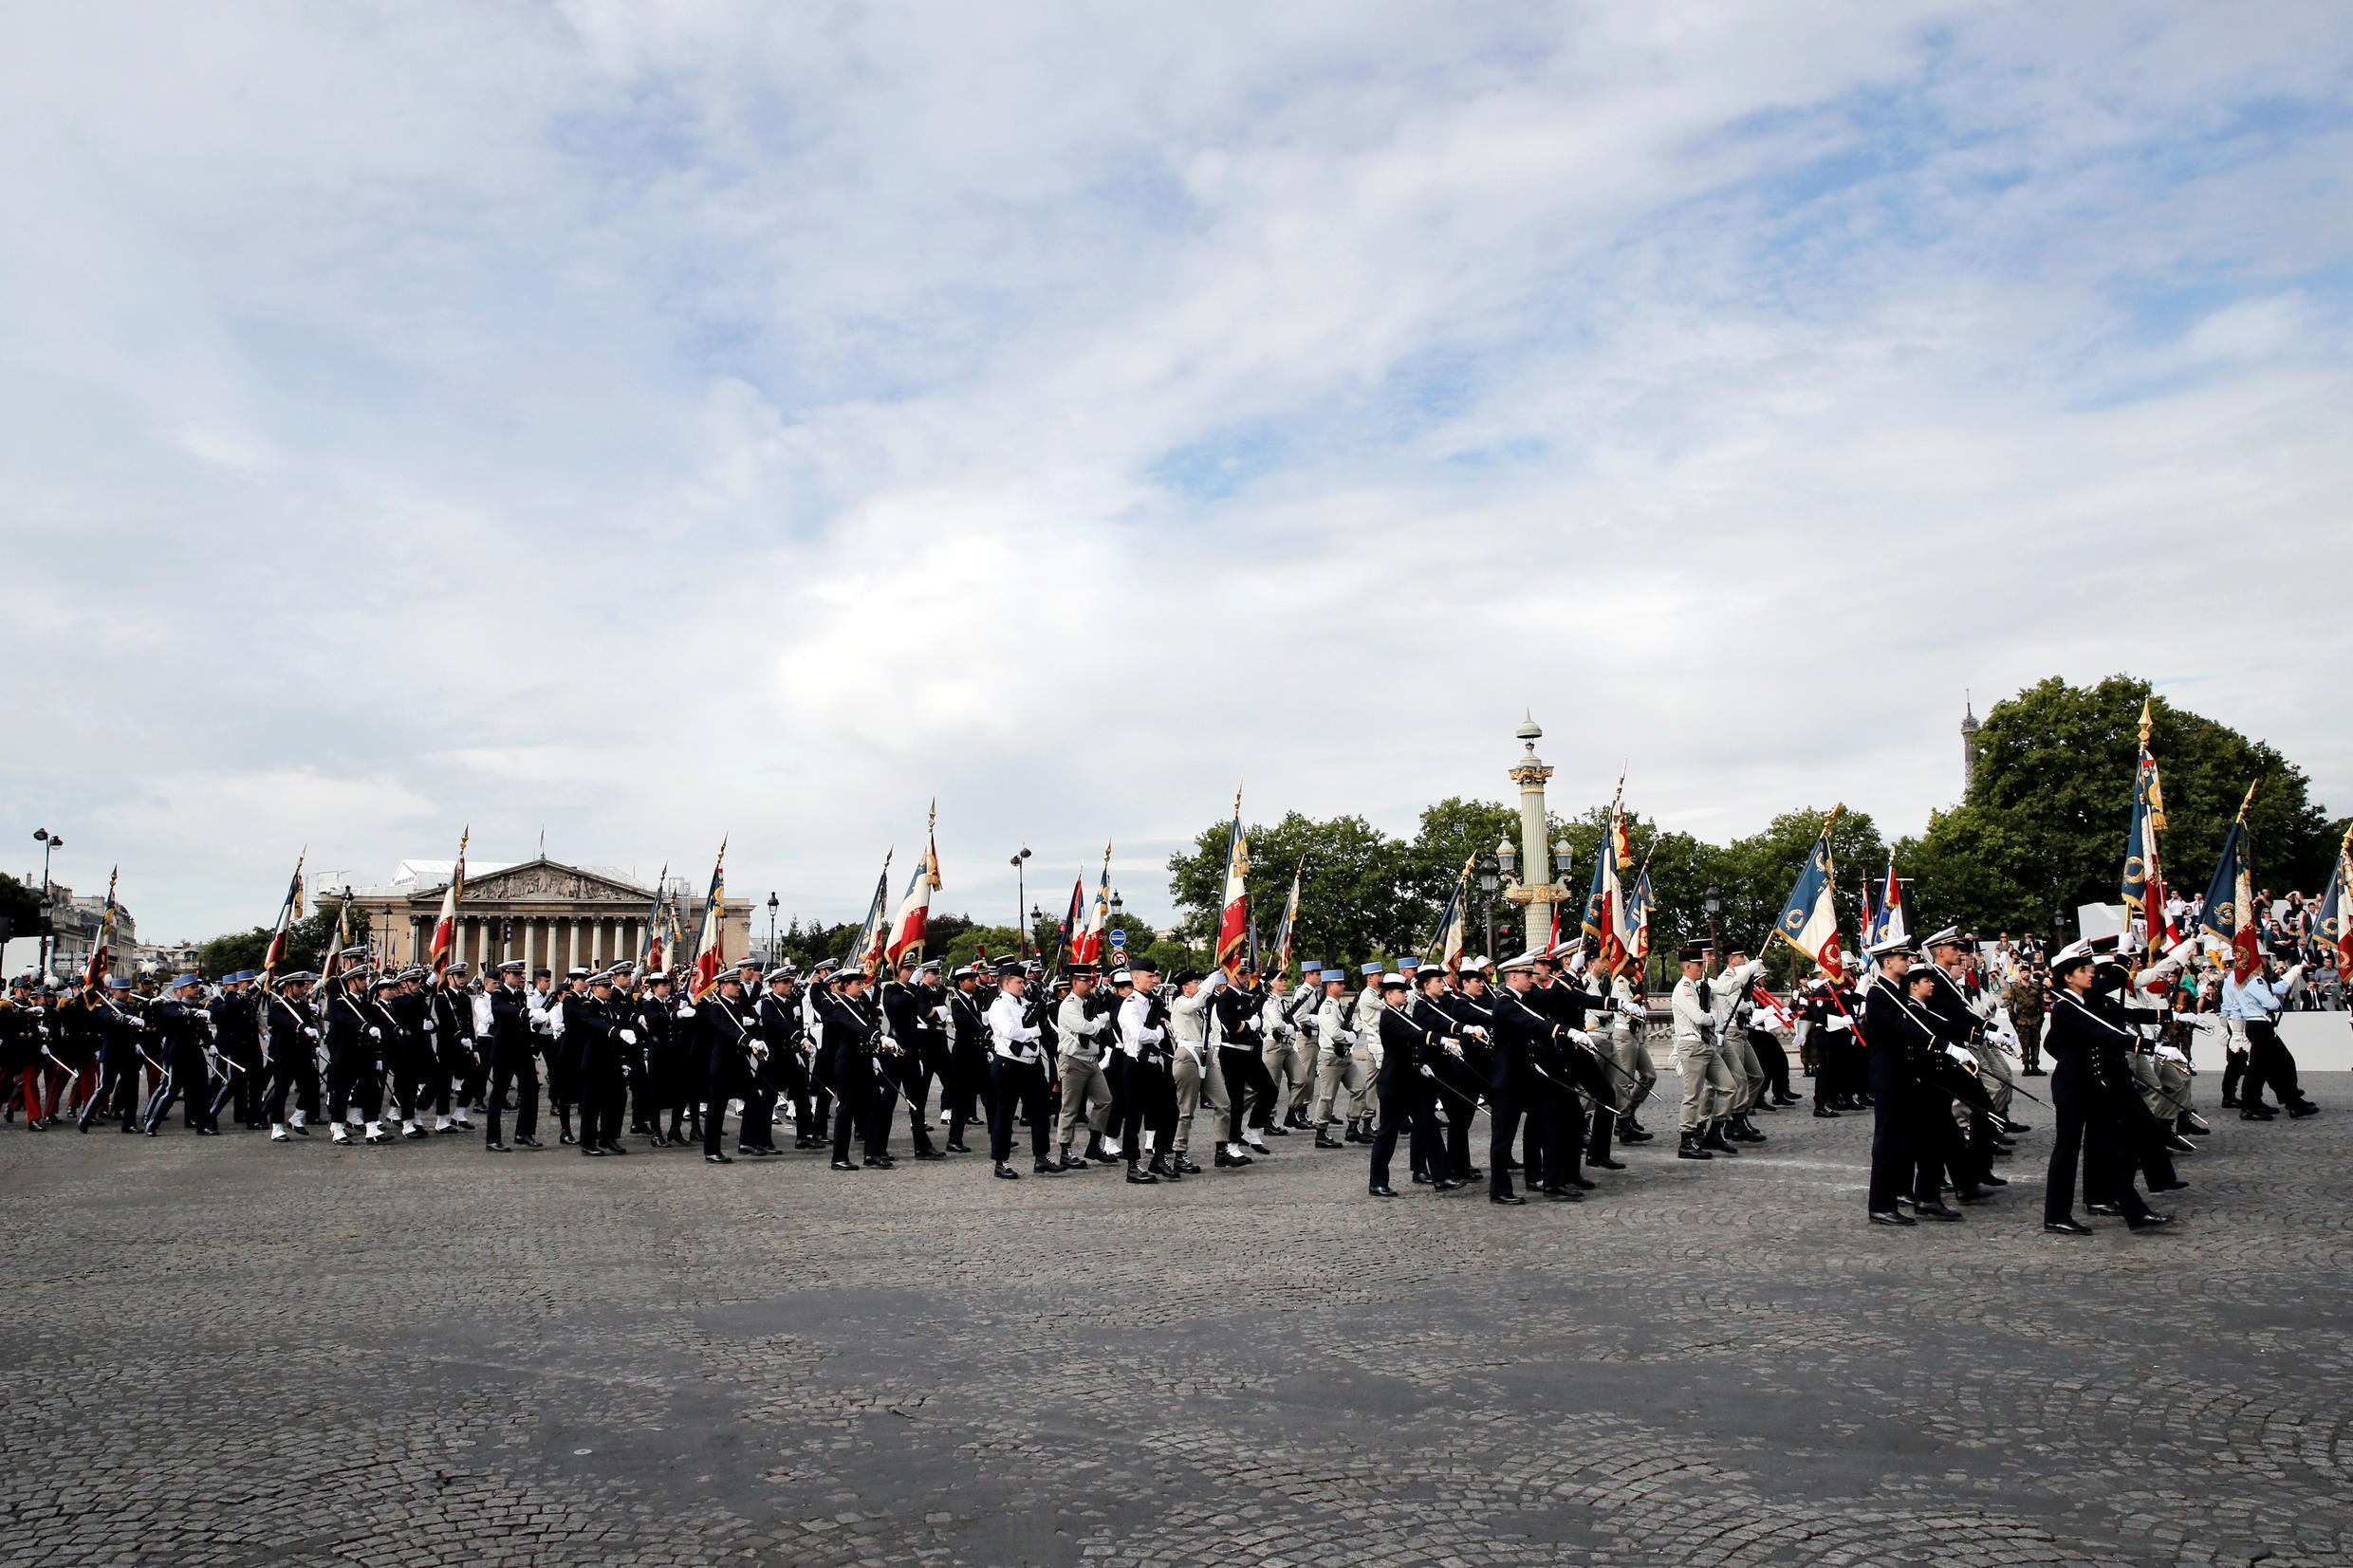 2020-07-14T083216Z_1575745438_RC2WSH9RRM2I_RTRMADP_3_FRANCE-NATIONALDAY-PARADE